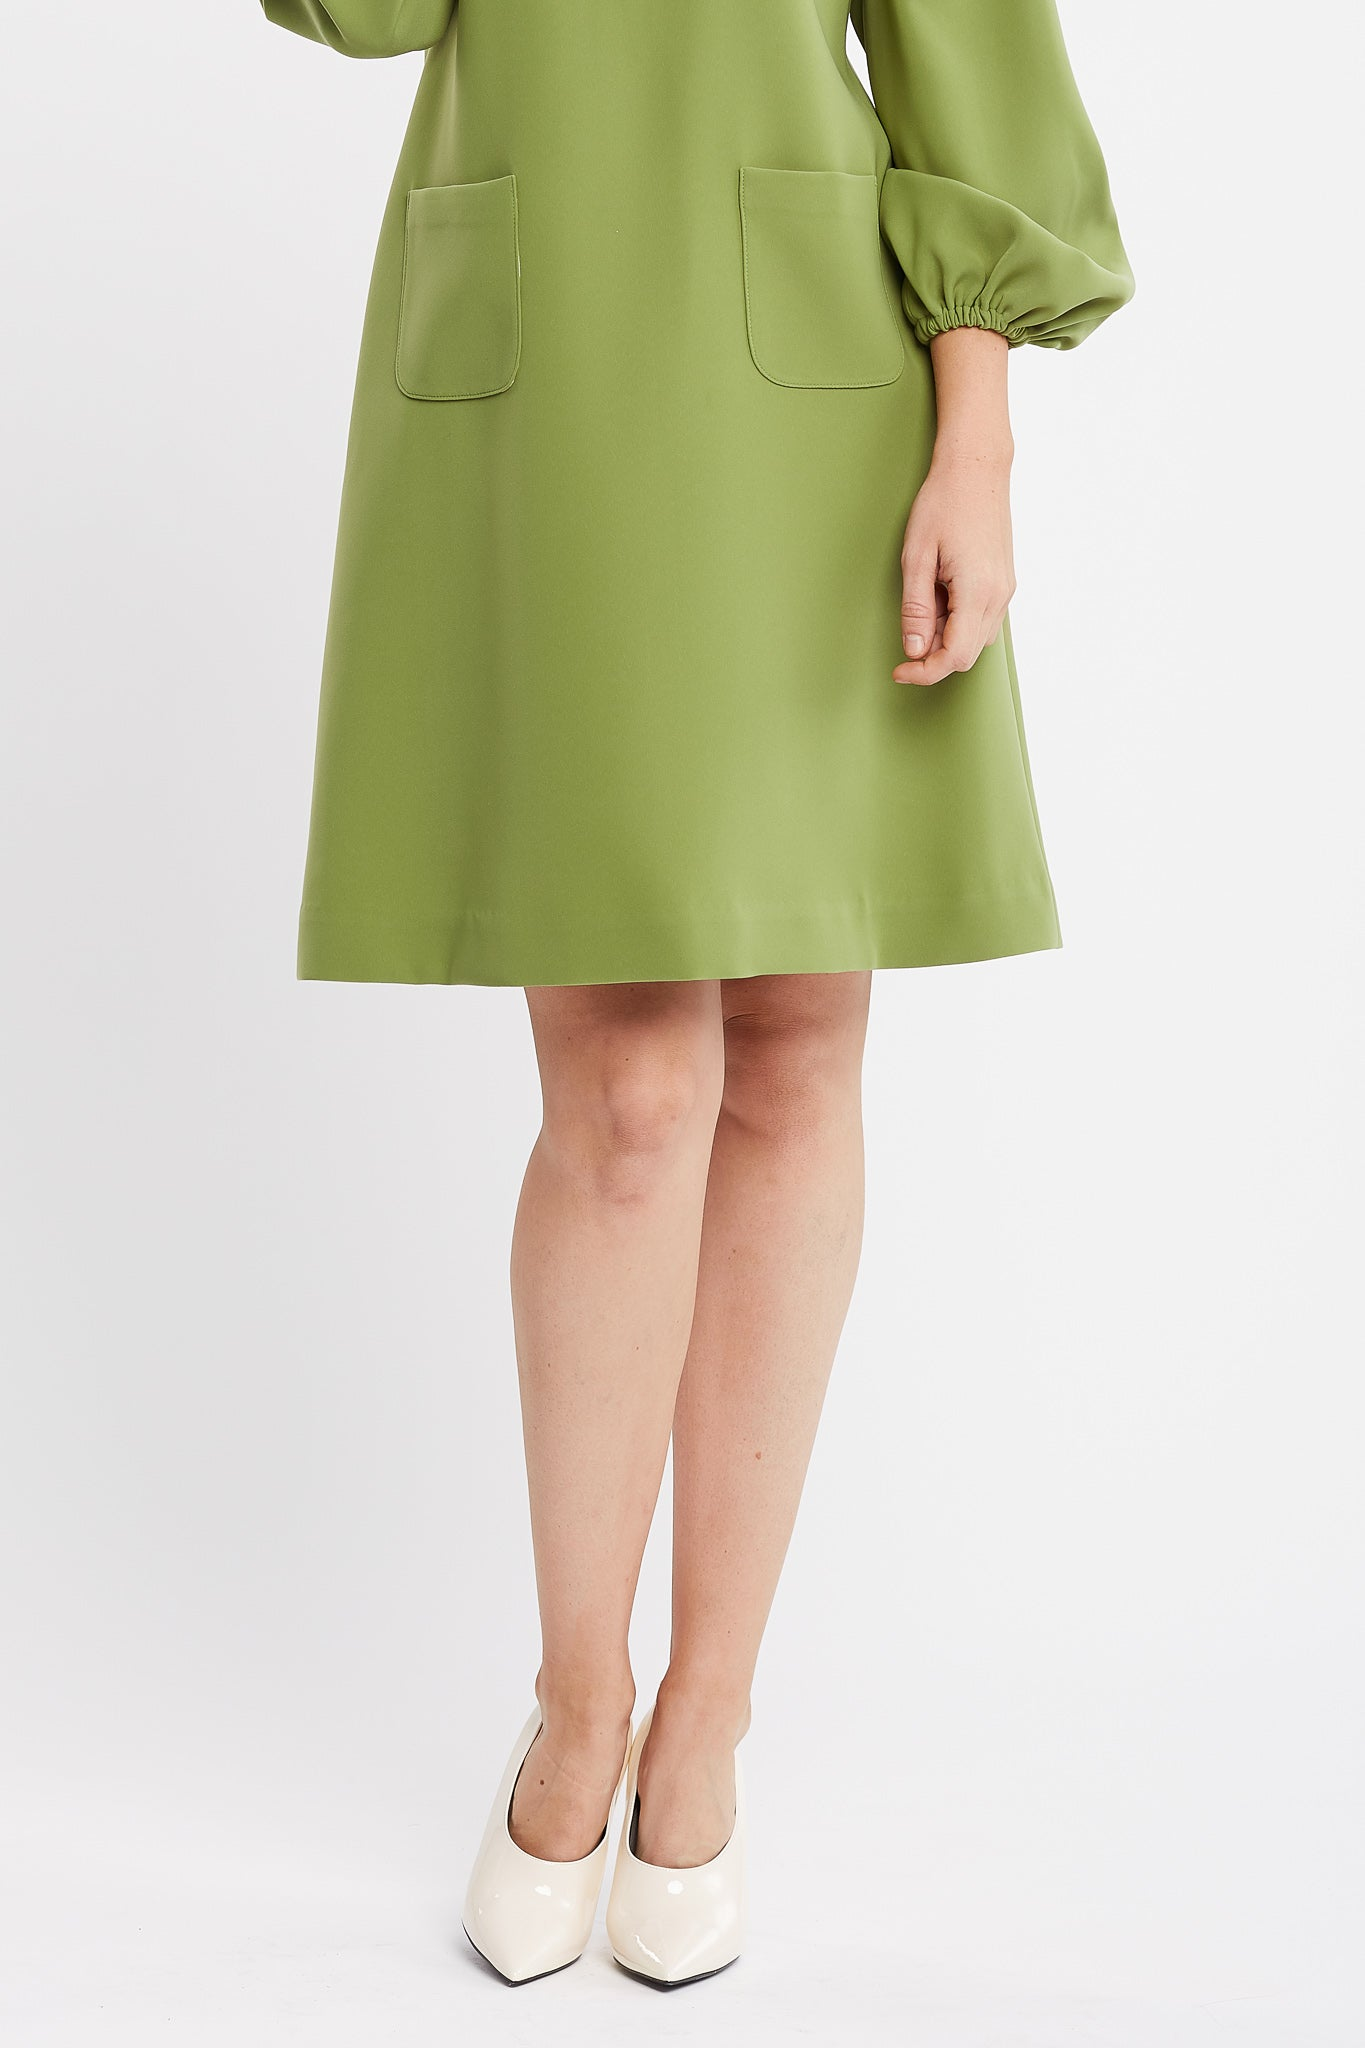 Karima Long Sleeve A-line Green Work and Cocktail Dress